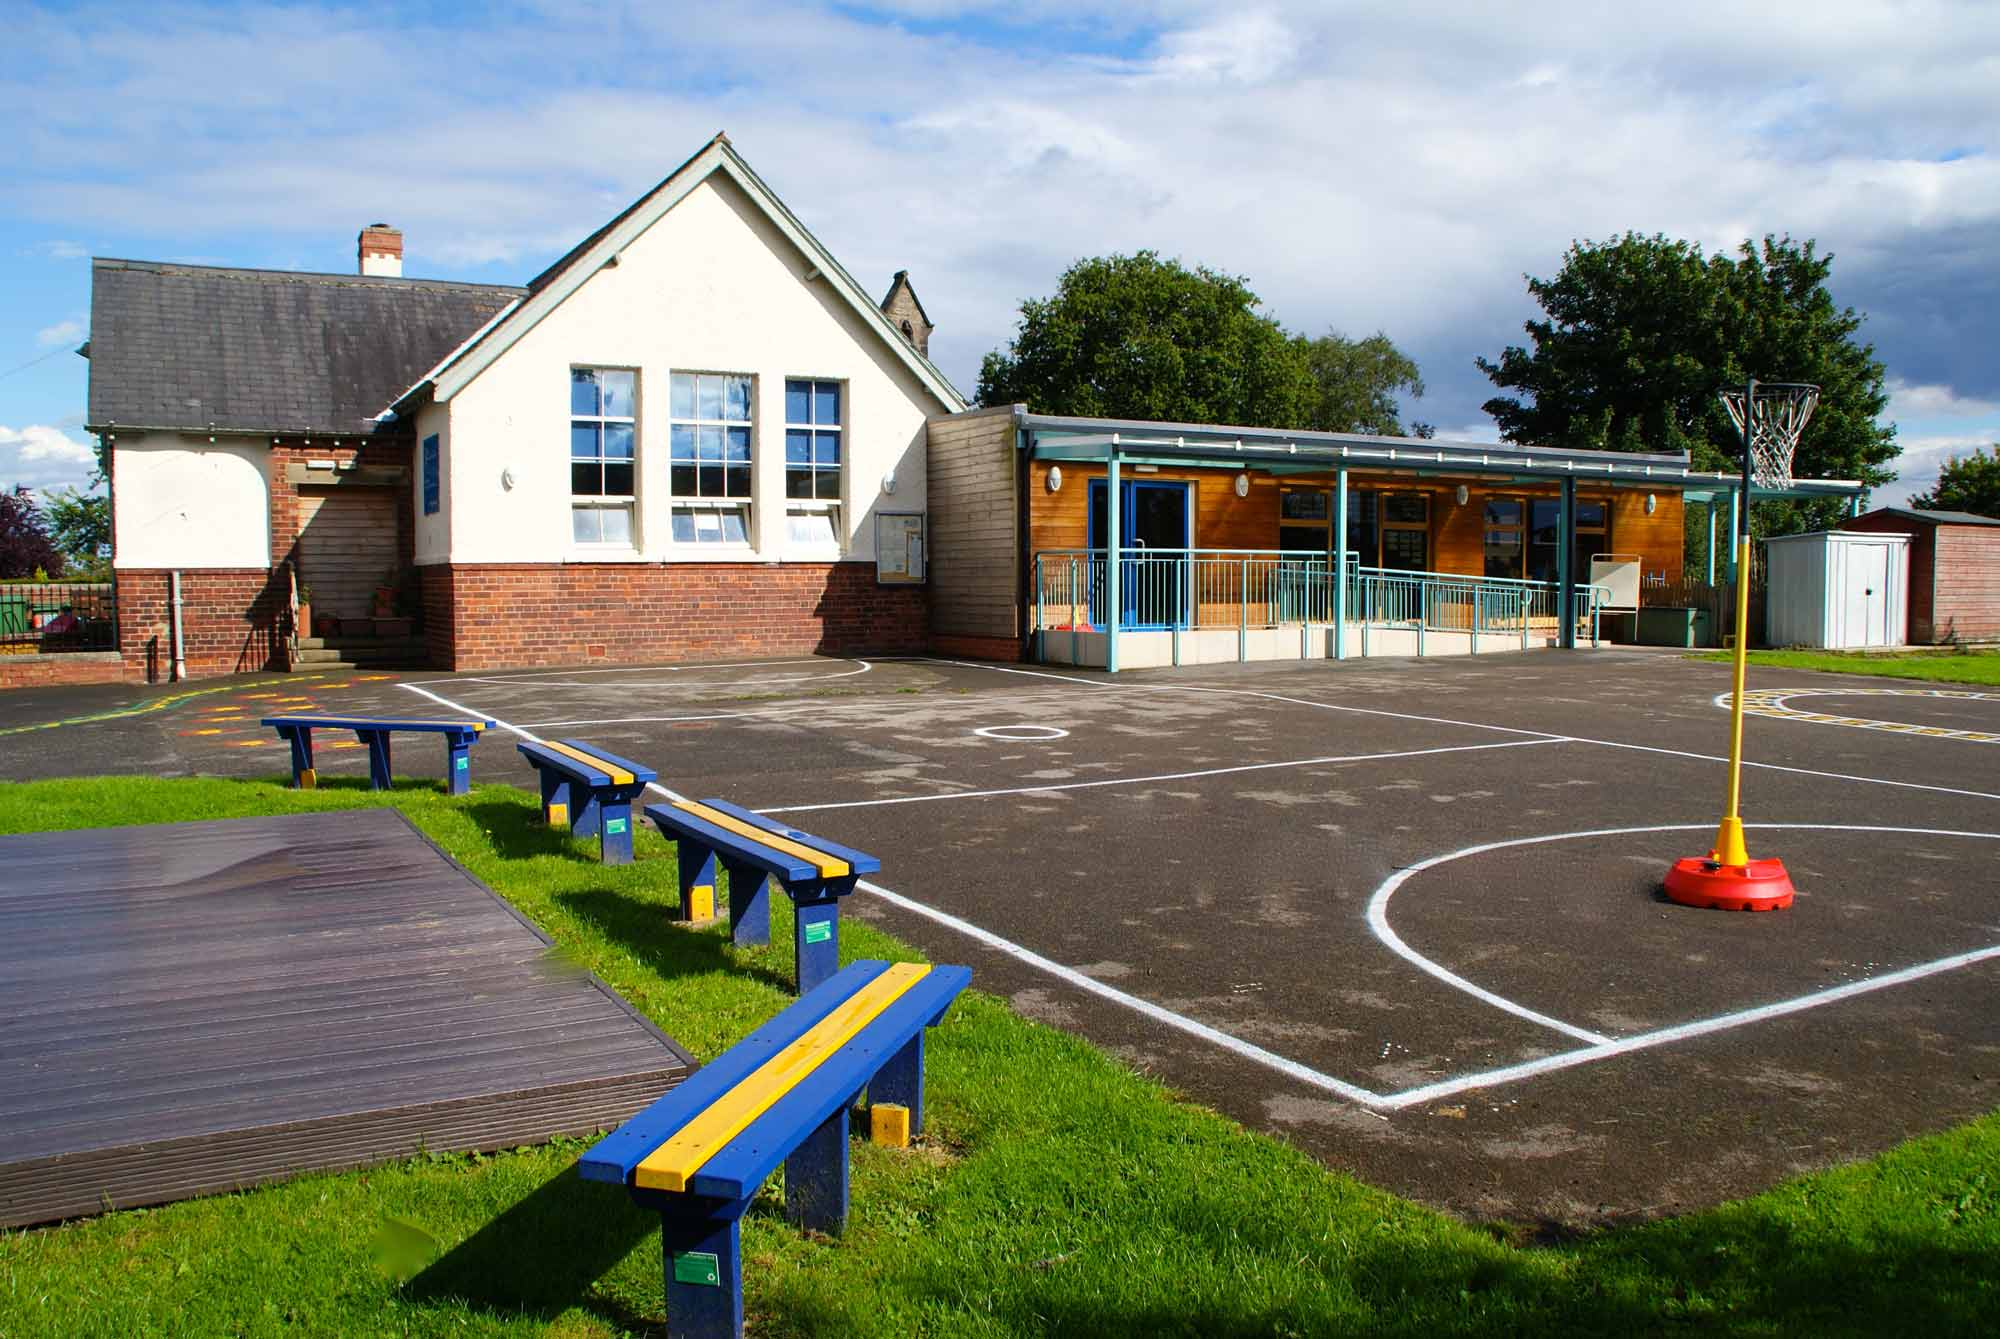 Sicklinghall CP School officially opened its Breakfast Club at the beginning of the new term